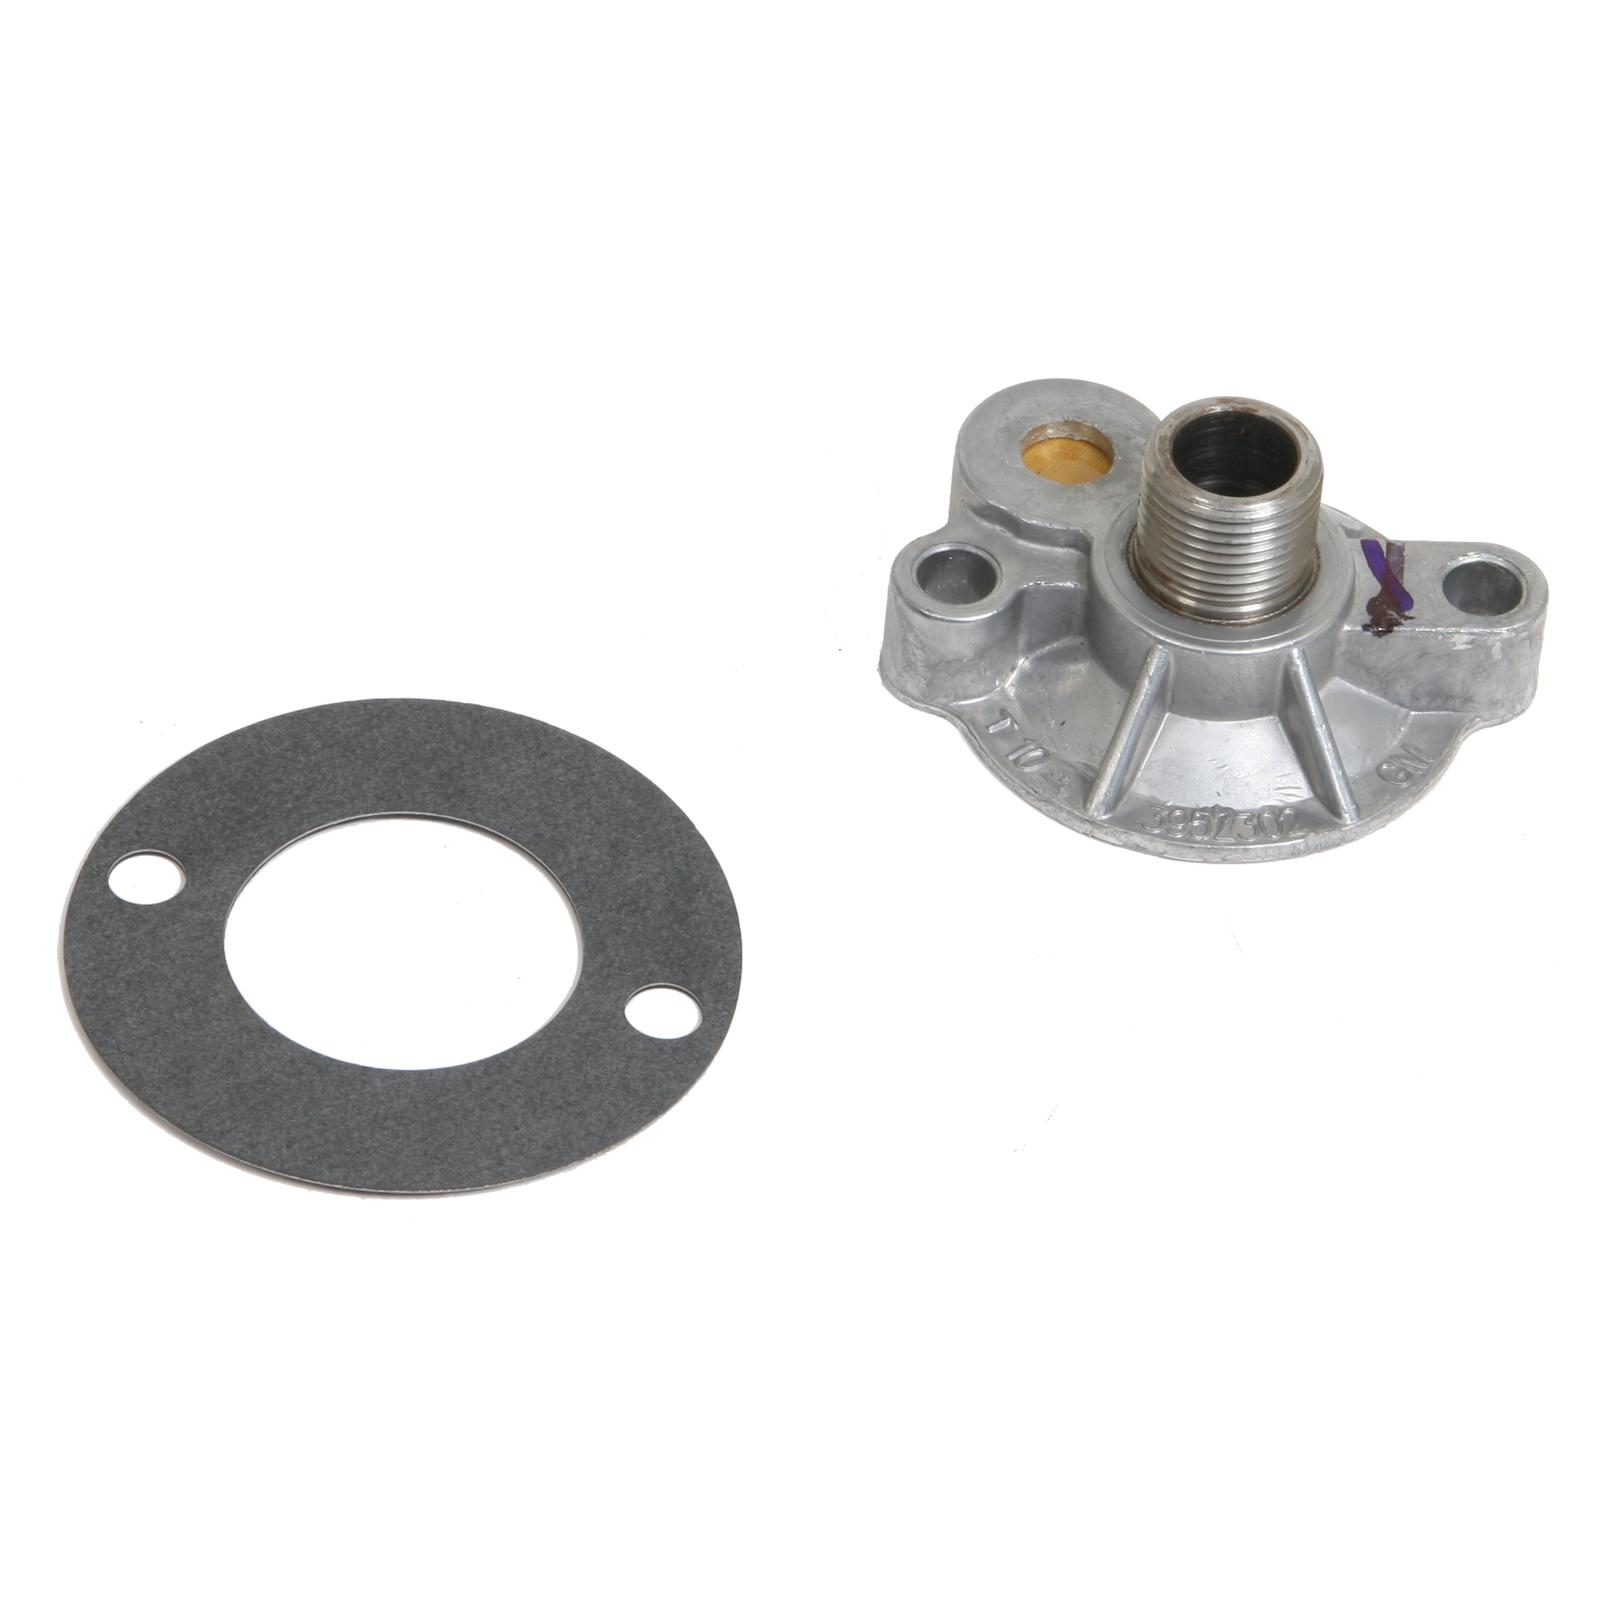 Chevy Small Block Oil Filter Adapter  Gm Performance Motor